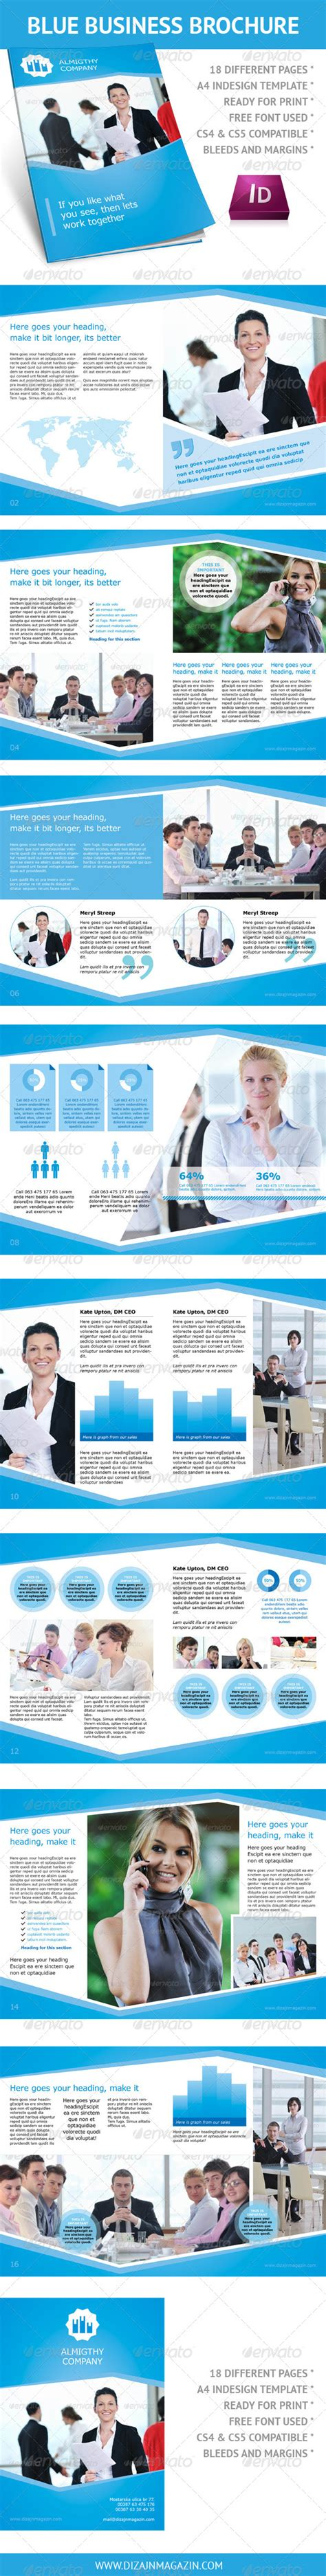 template indesign brochure a4 clean blue business brochure a4 indesign template